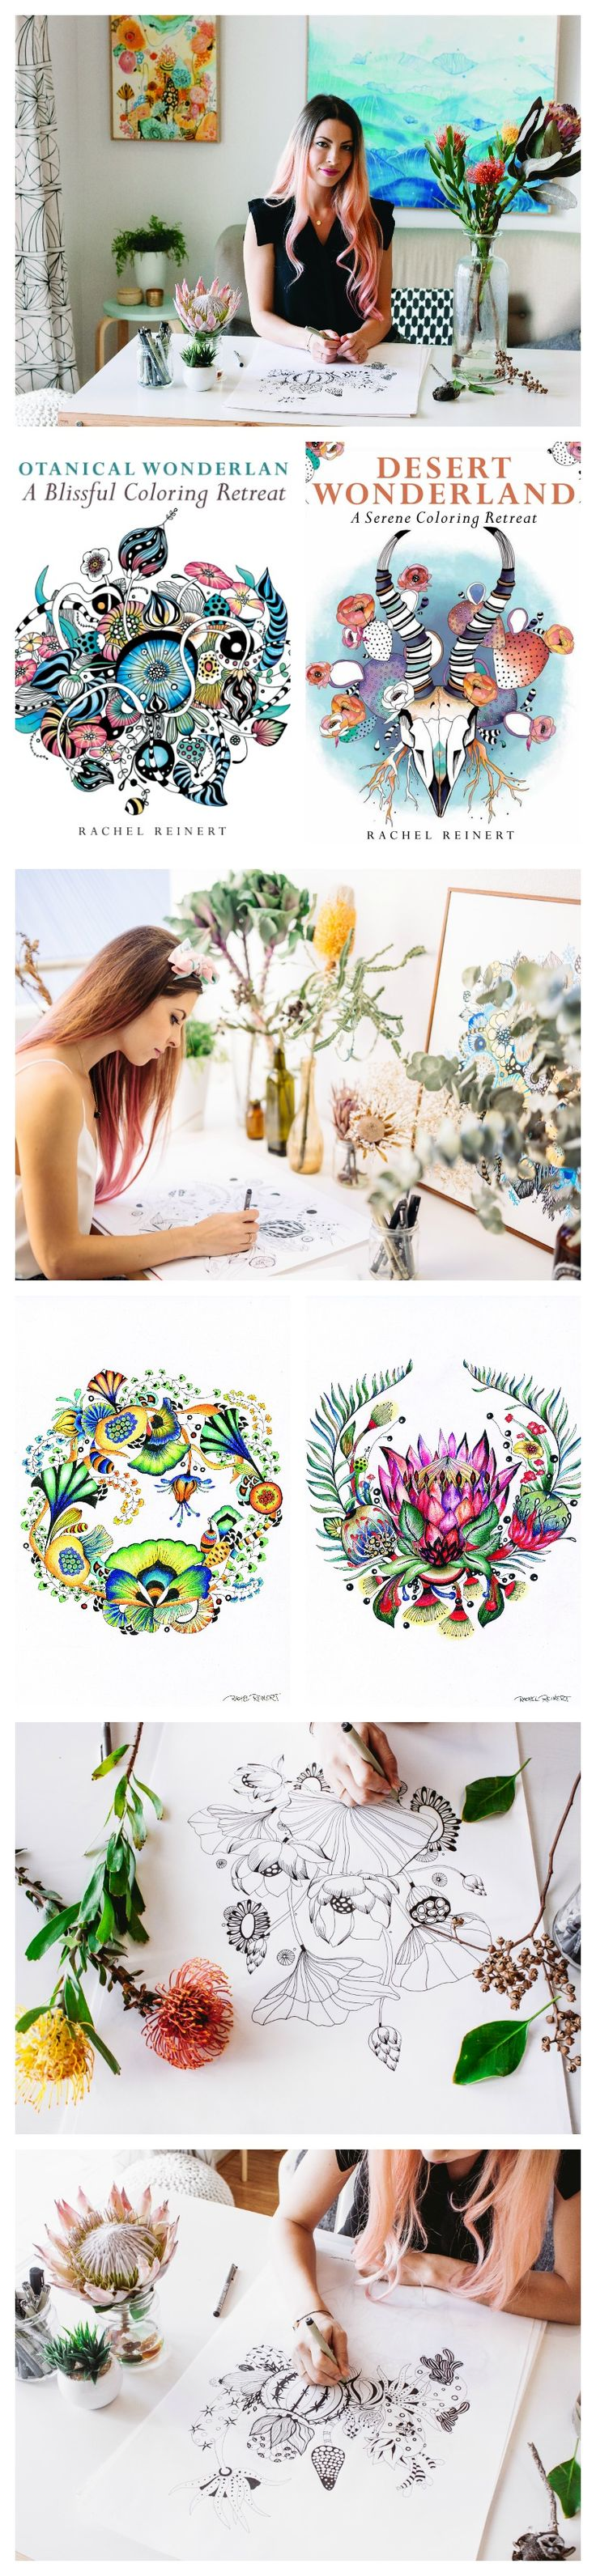 Book color illustrator - Illustrator Of The Popular Adult Coloring Book Botanical Wonderland Rachel Reinert Talks To Us About Her Favorite Tools To Color And Latest Projects